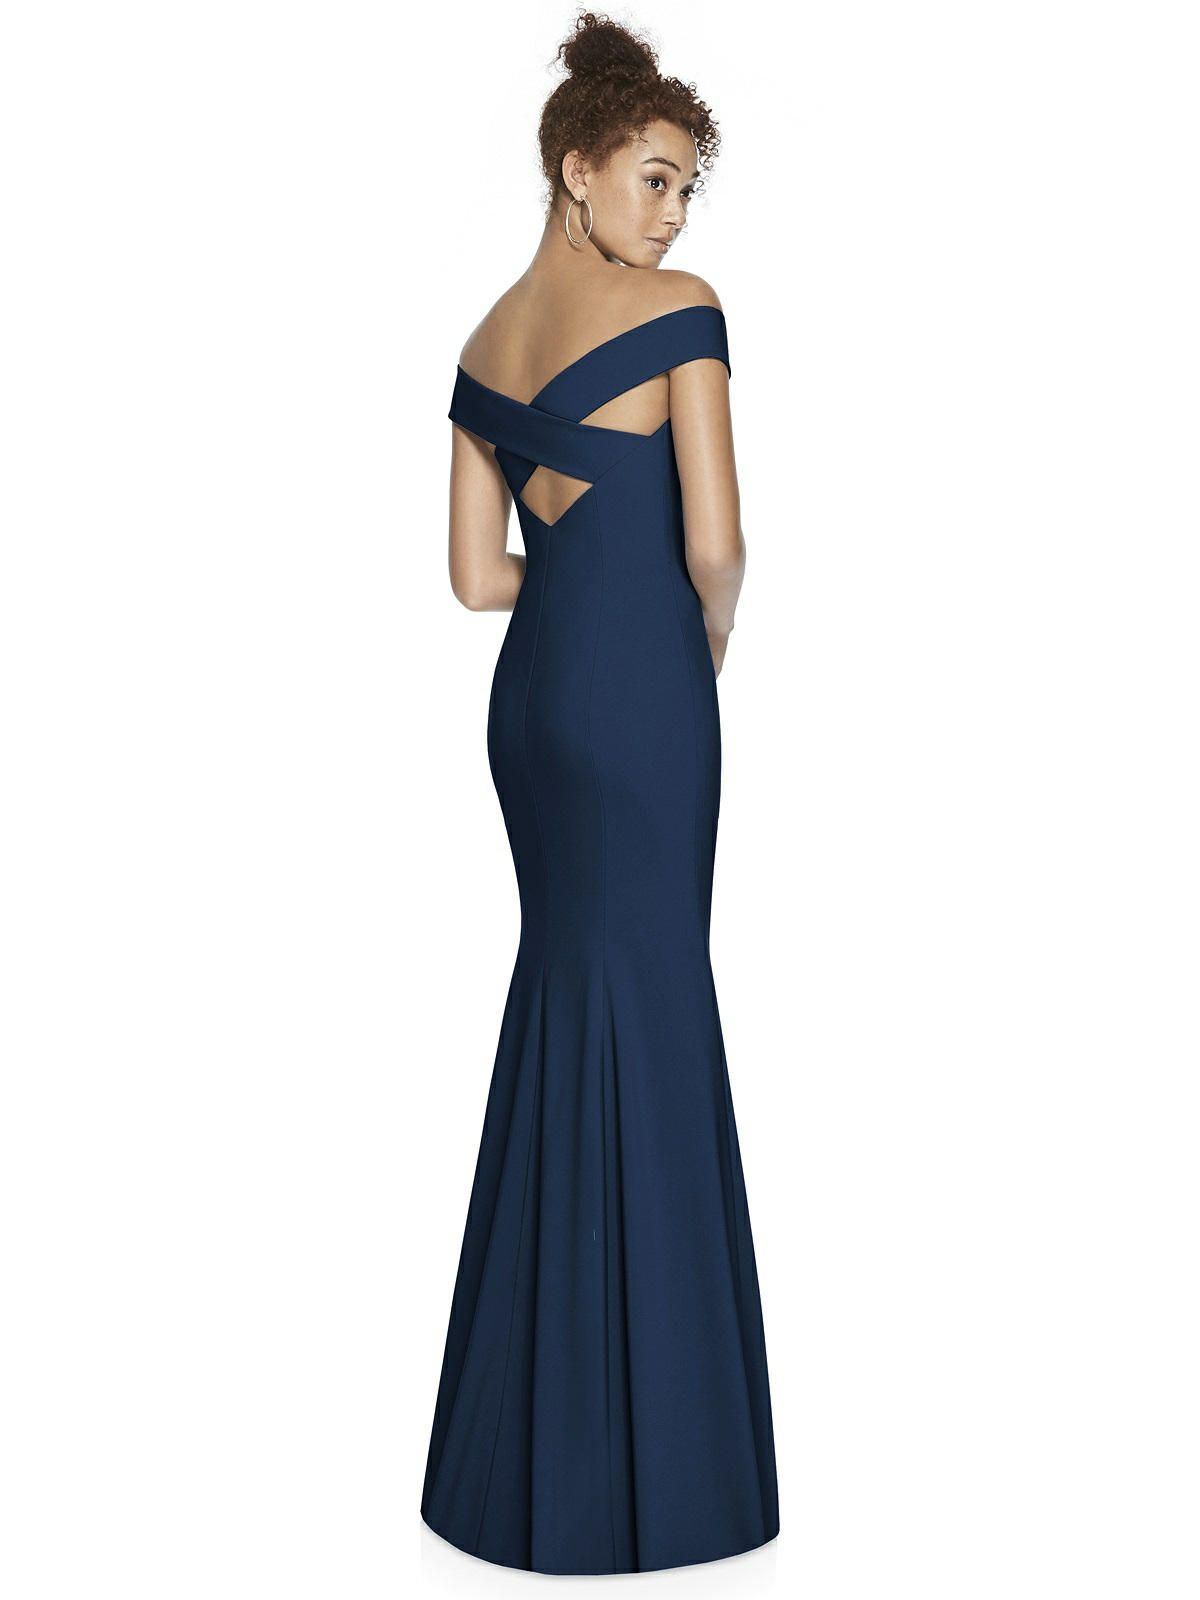 Dessy collection style in bridesmaid dress trends